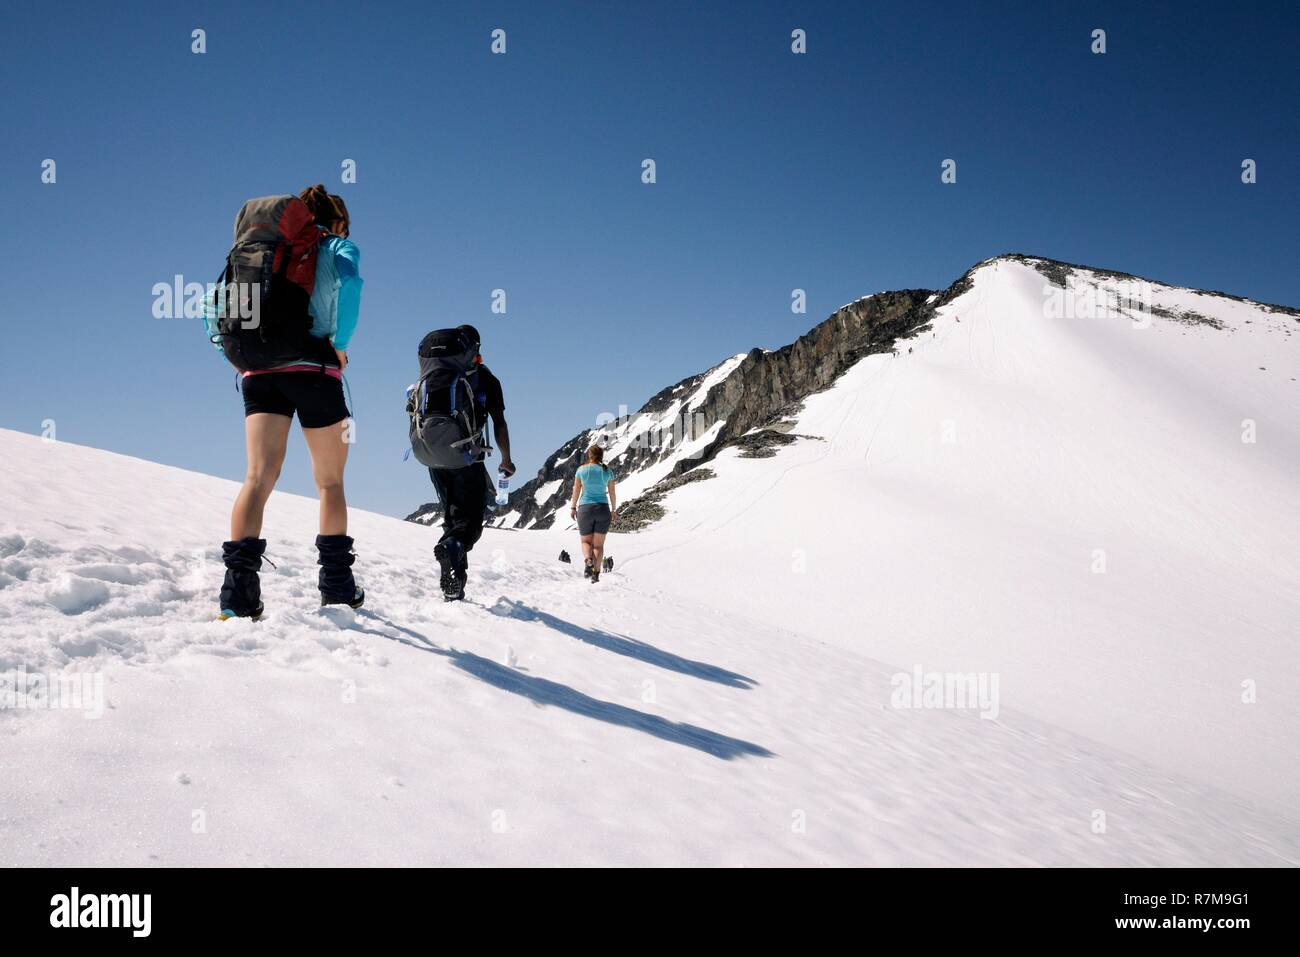 Norway, Oppland, Vaga, Jotunheimen National Park, trekkers climbing Galdhopiggen, the tallest mountain in Norway and Scandinavia at 2469m Stock Photo